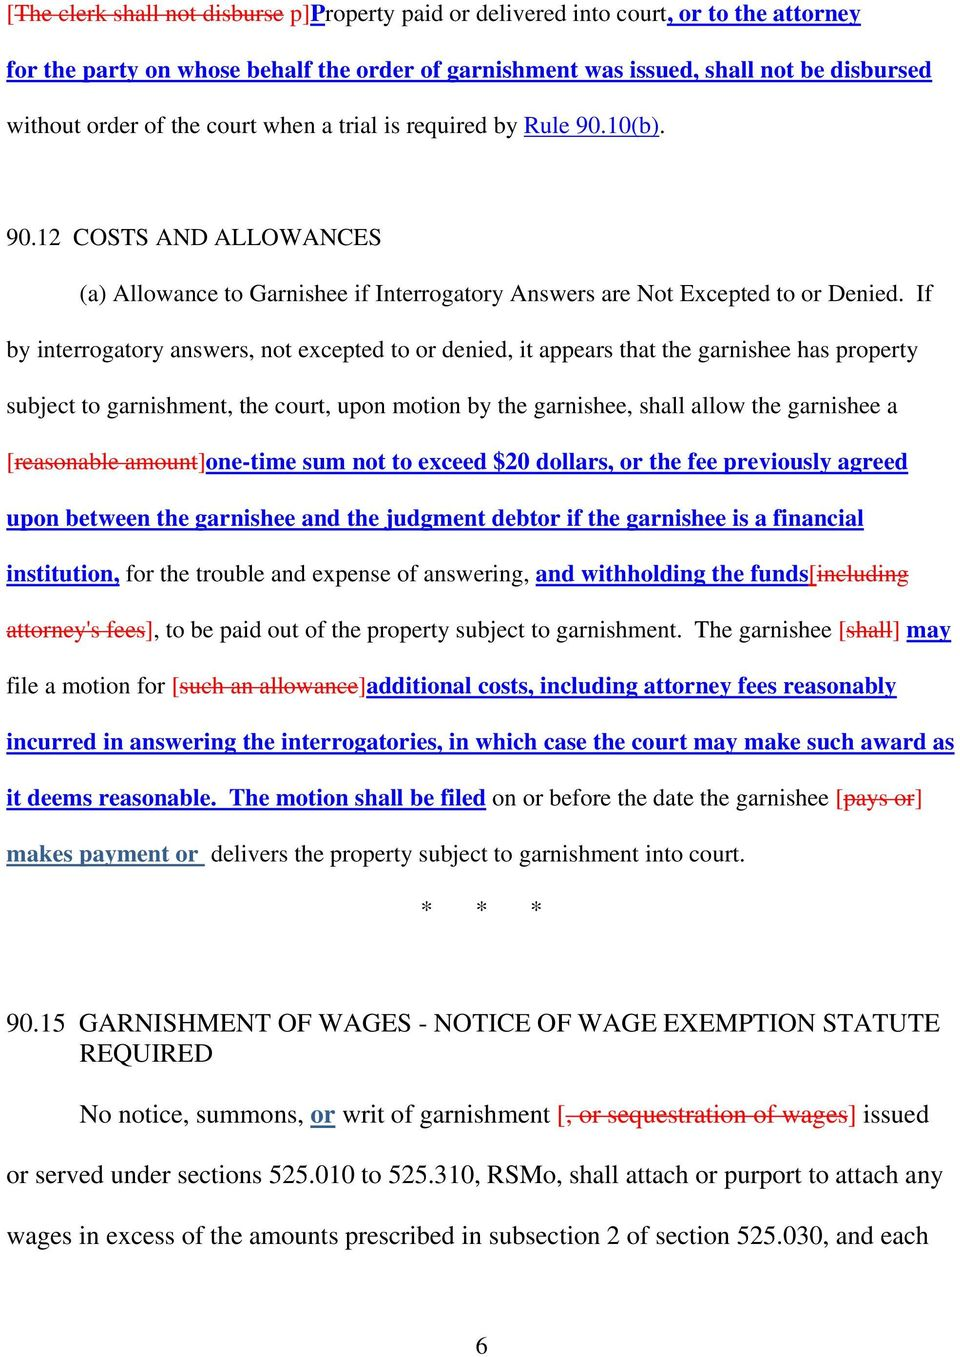 If by interrogatory answers, not excepted to or denied, it appears that the garnishee has property subject to garnishment, the court, upon motion by the garnishee, shall allow the garnishee a